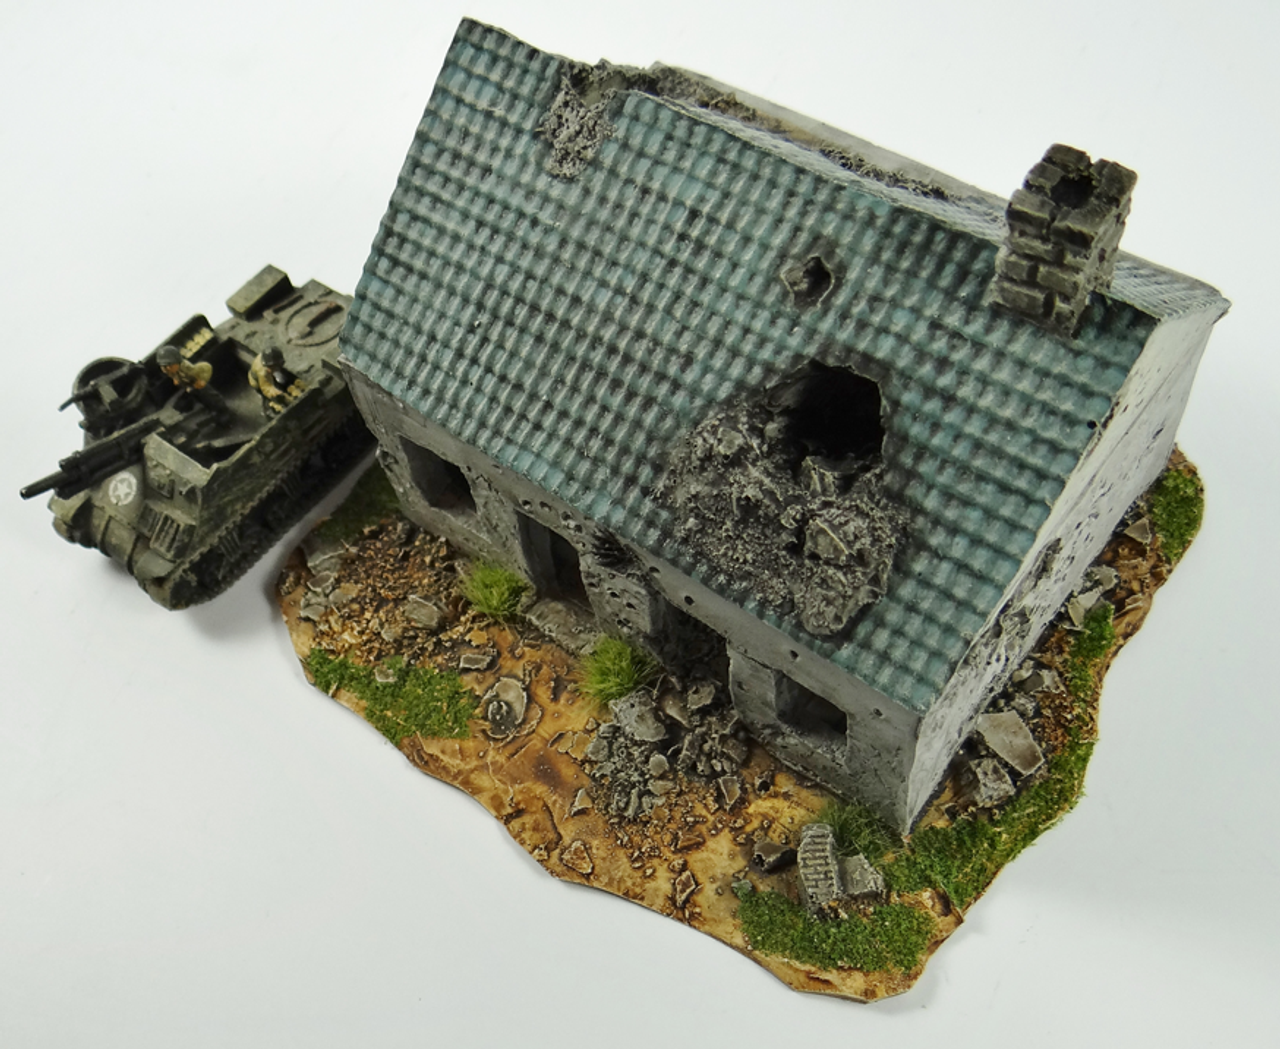 1002-Normandy Town House Ruin